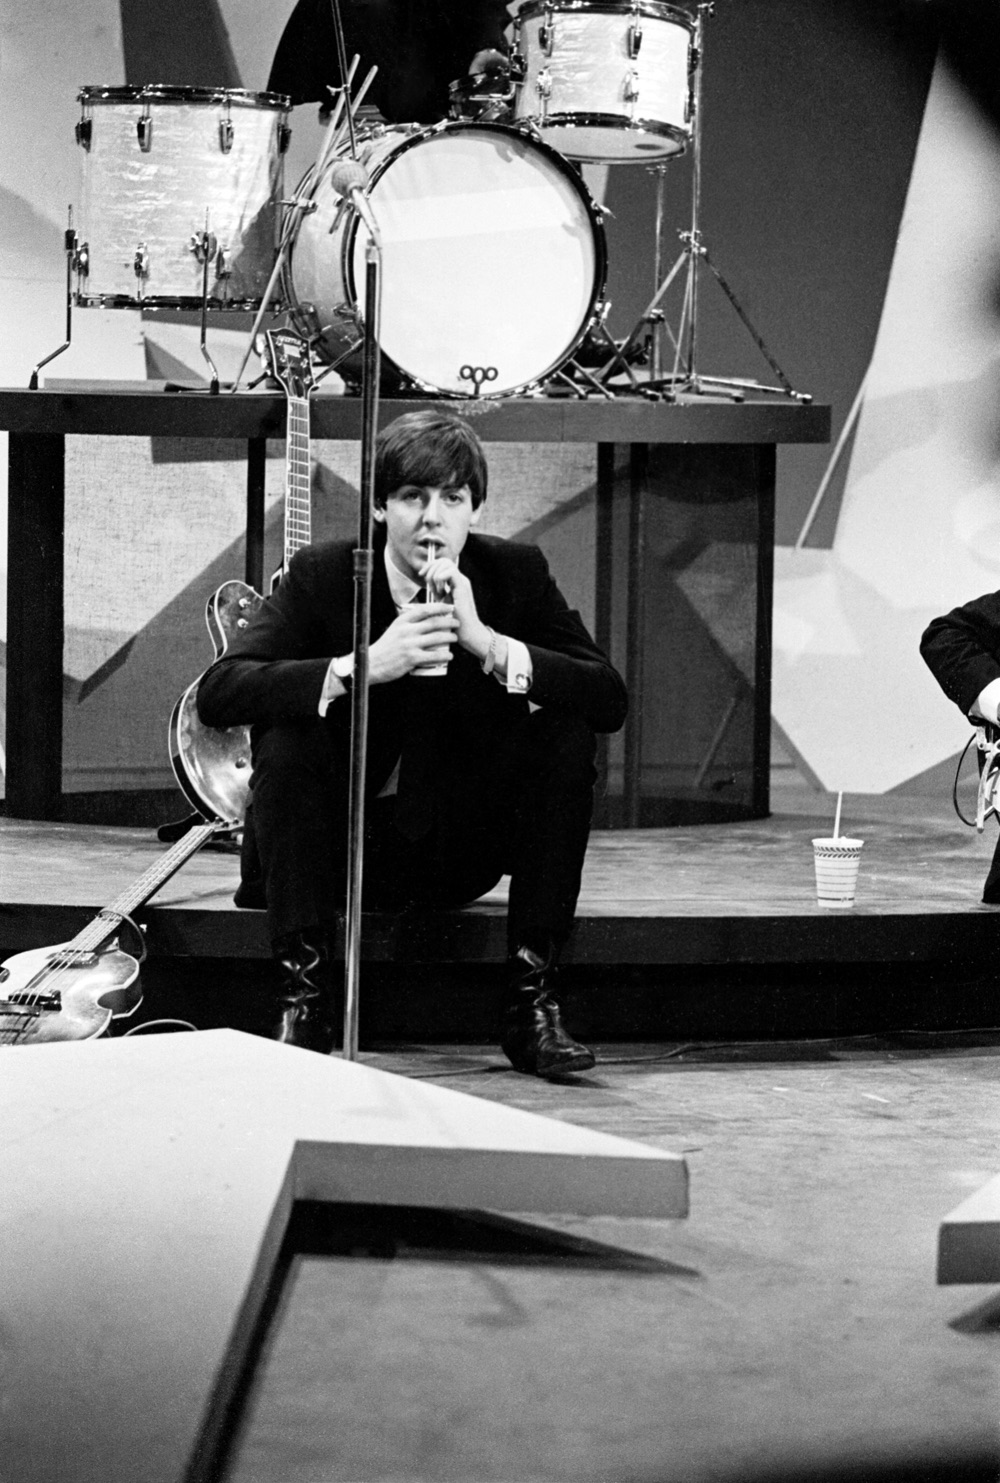 Paul McCartney on the Ed Sullivan Show, February 9th 1964.